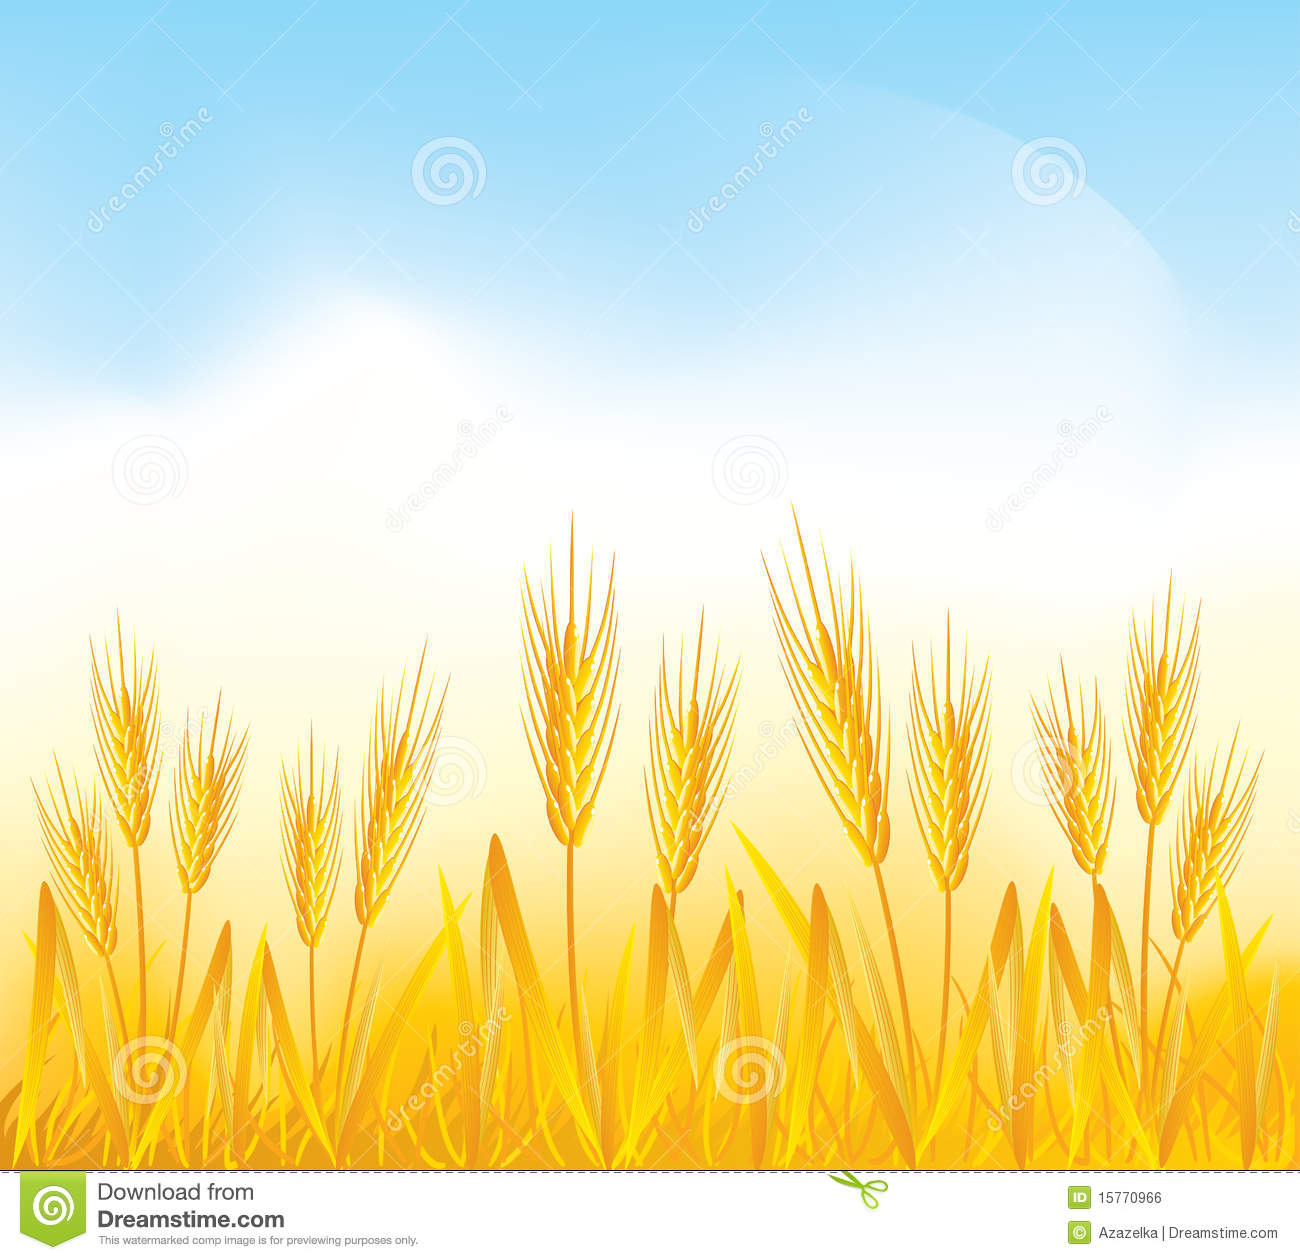 Wheat field clipart - Clipground